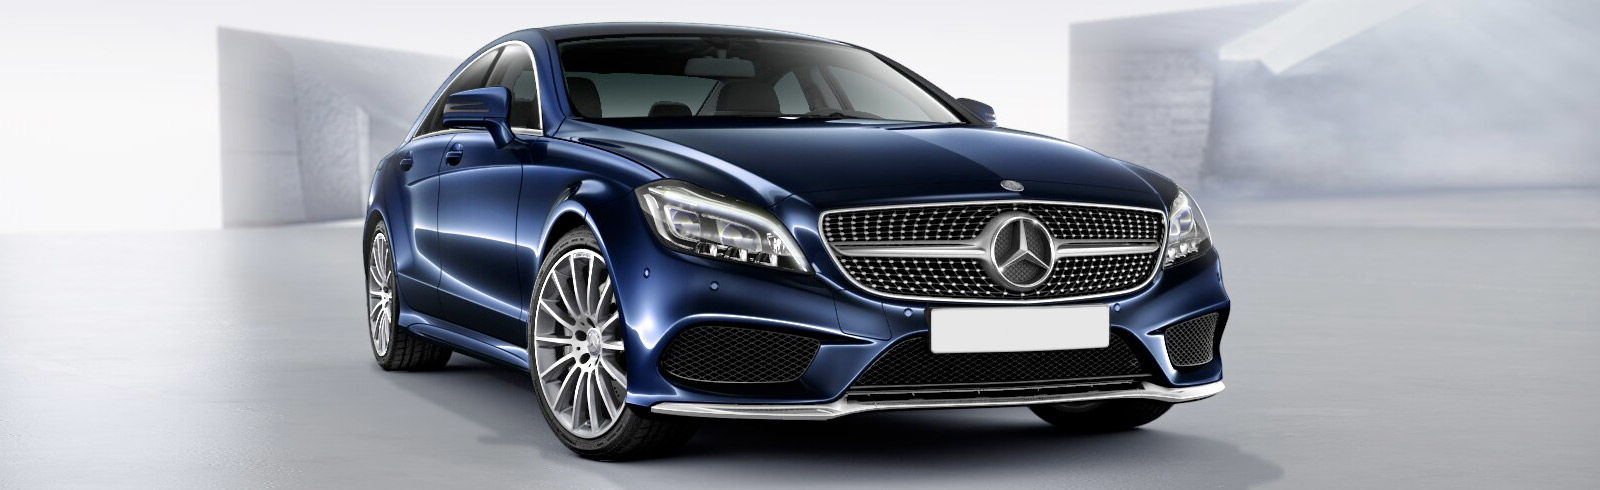 Mercedes cls colours guide and prices carwow for Navy blue mercedes benz